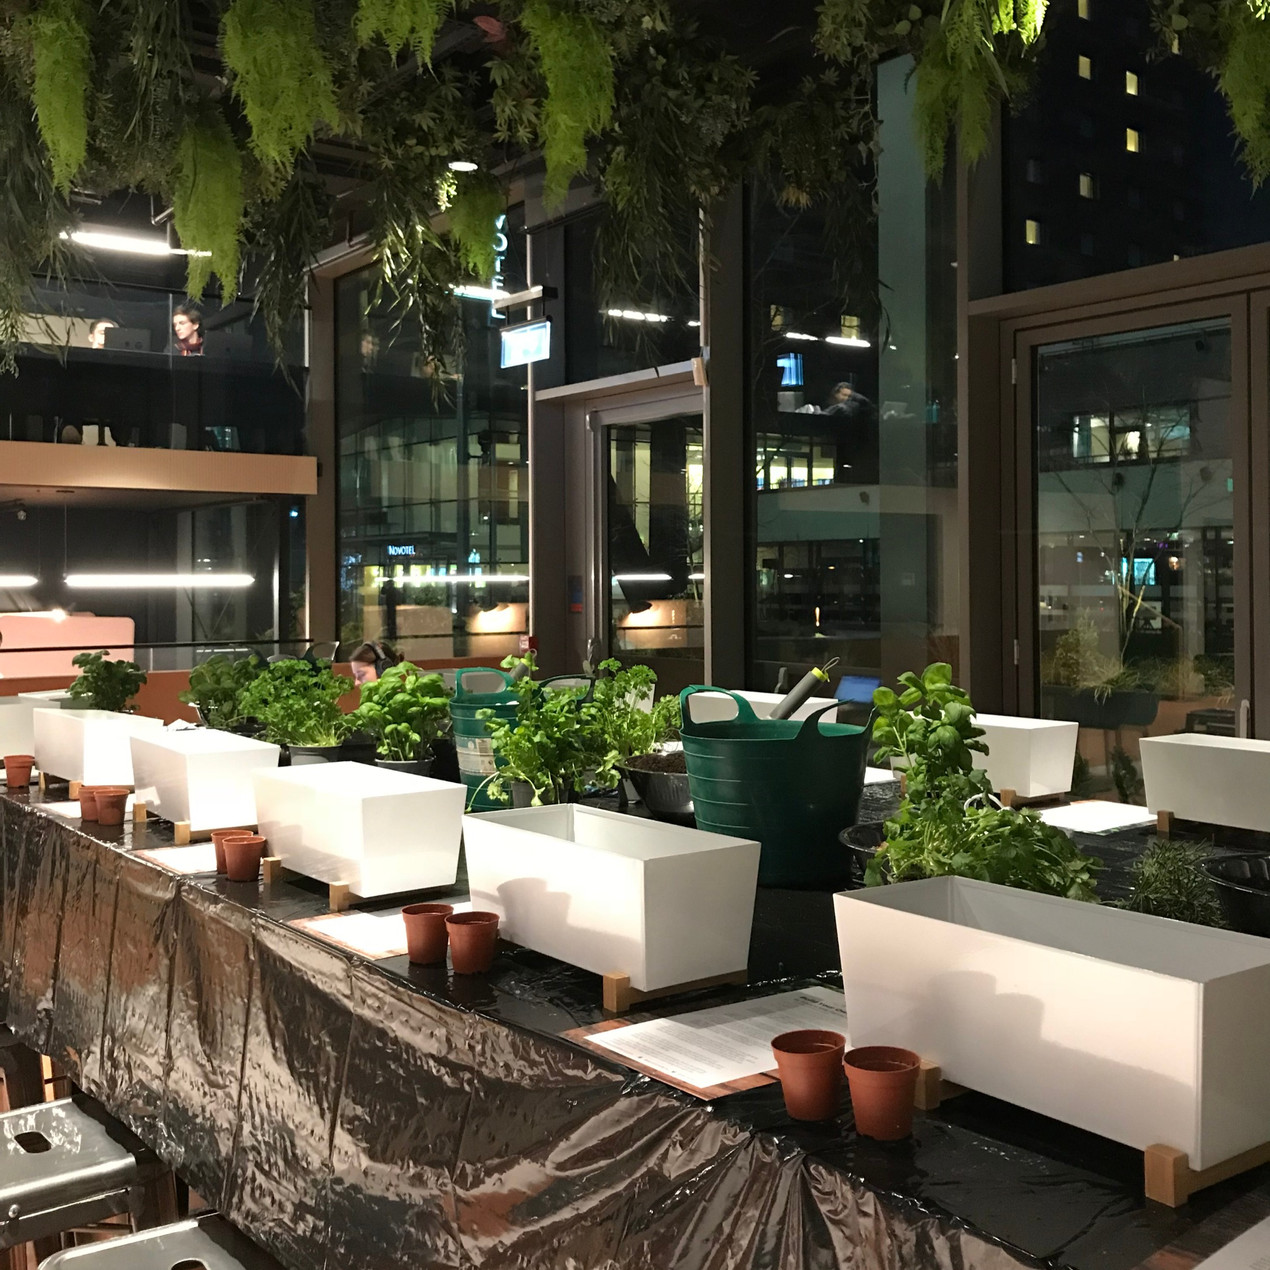 Build your own herb garden workshop for wellbeing